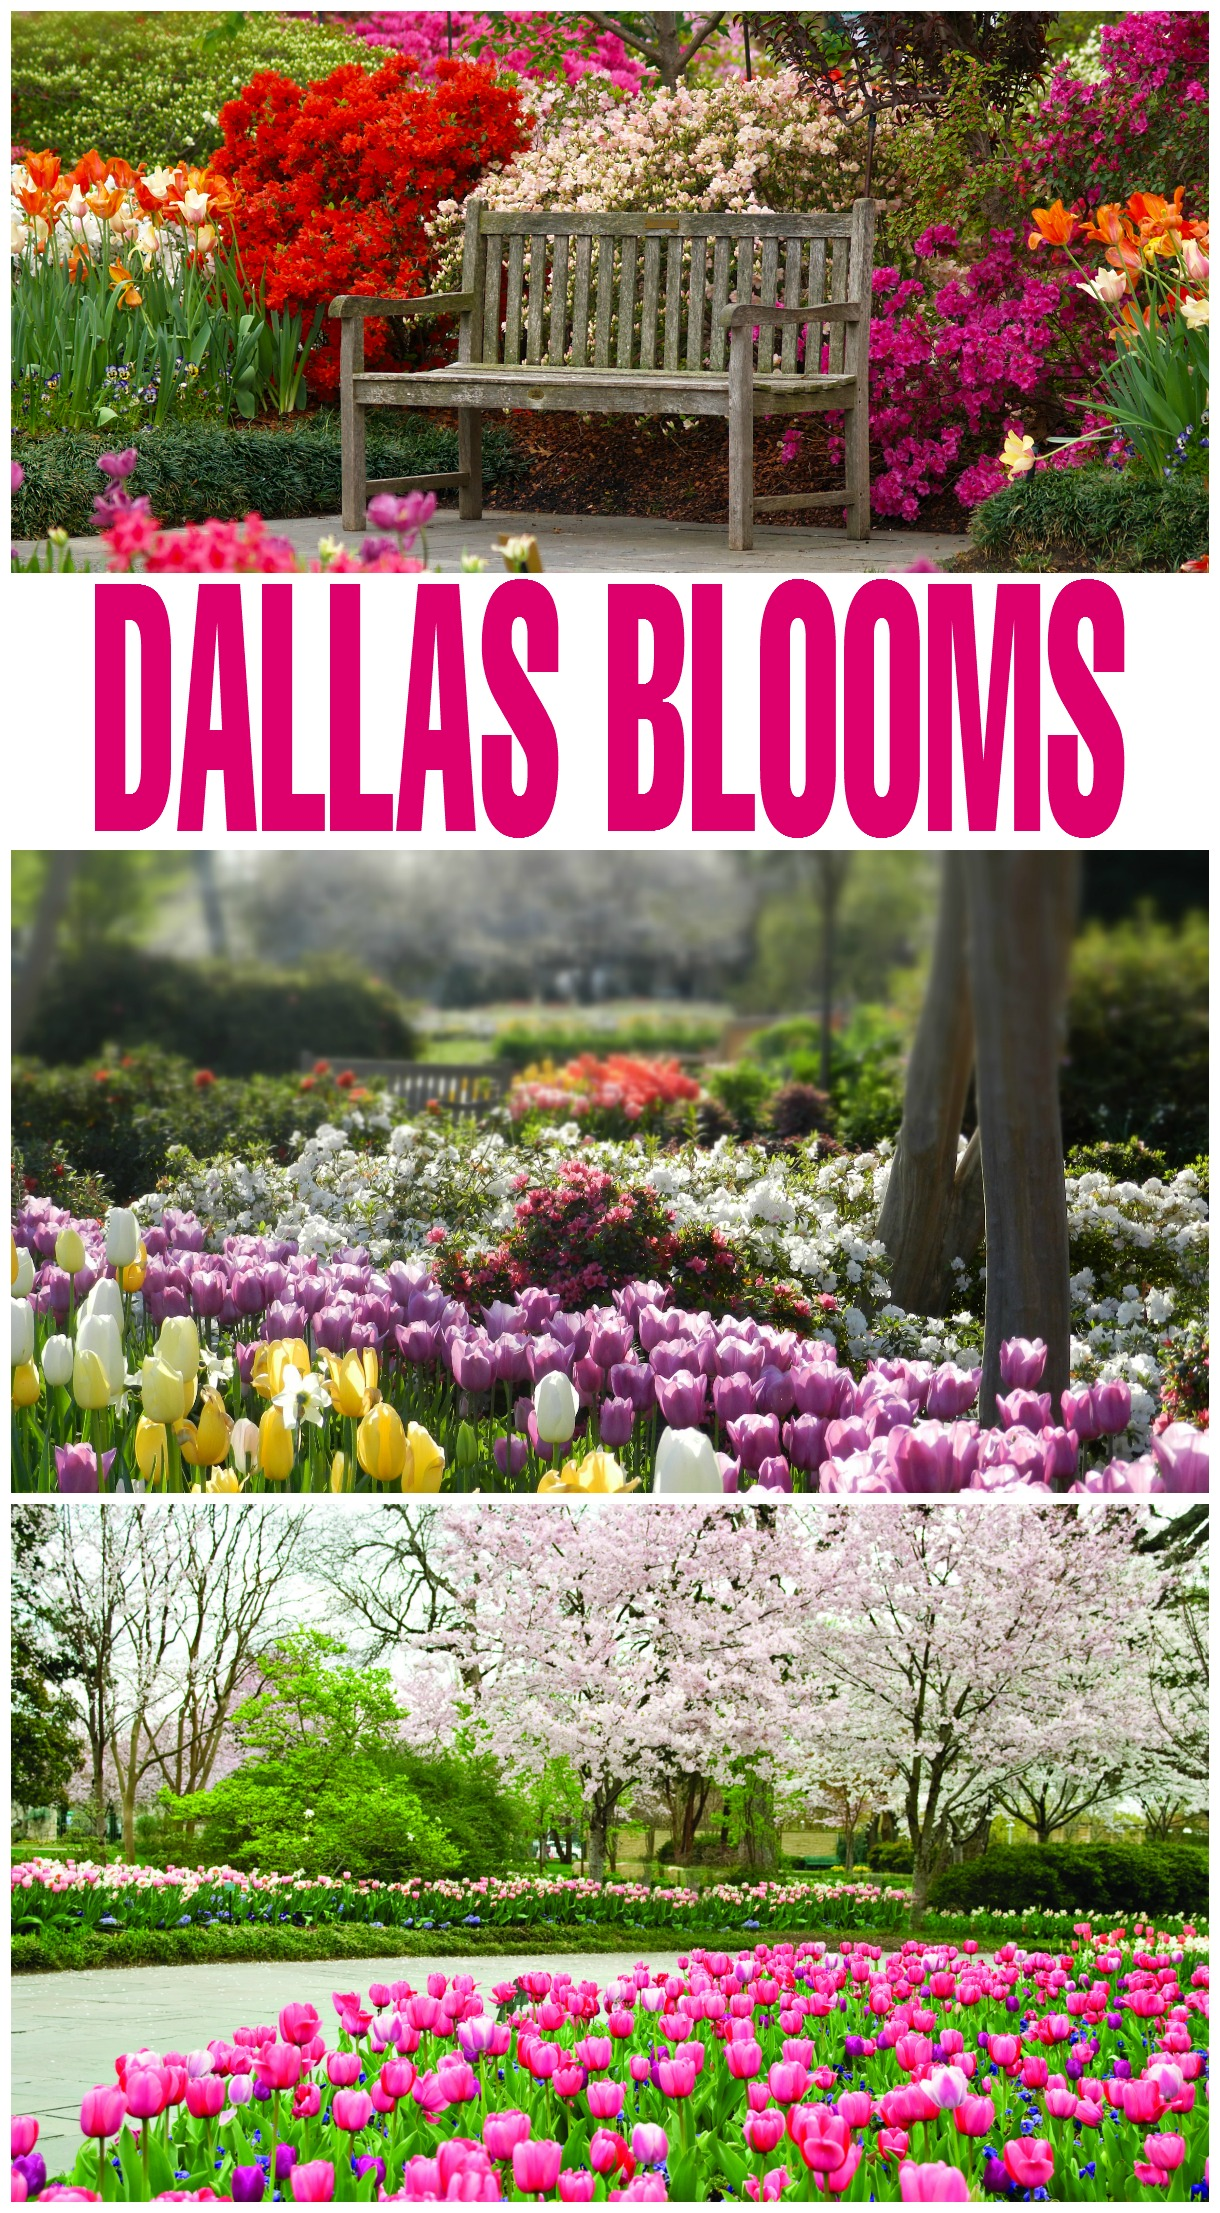 Free Admission and Parking, Just in Time for Dallas Blooms!